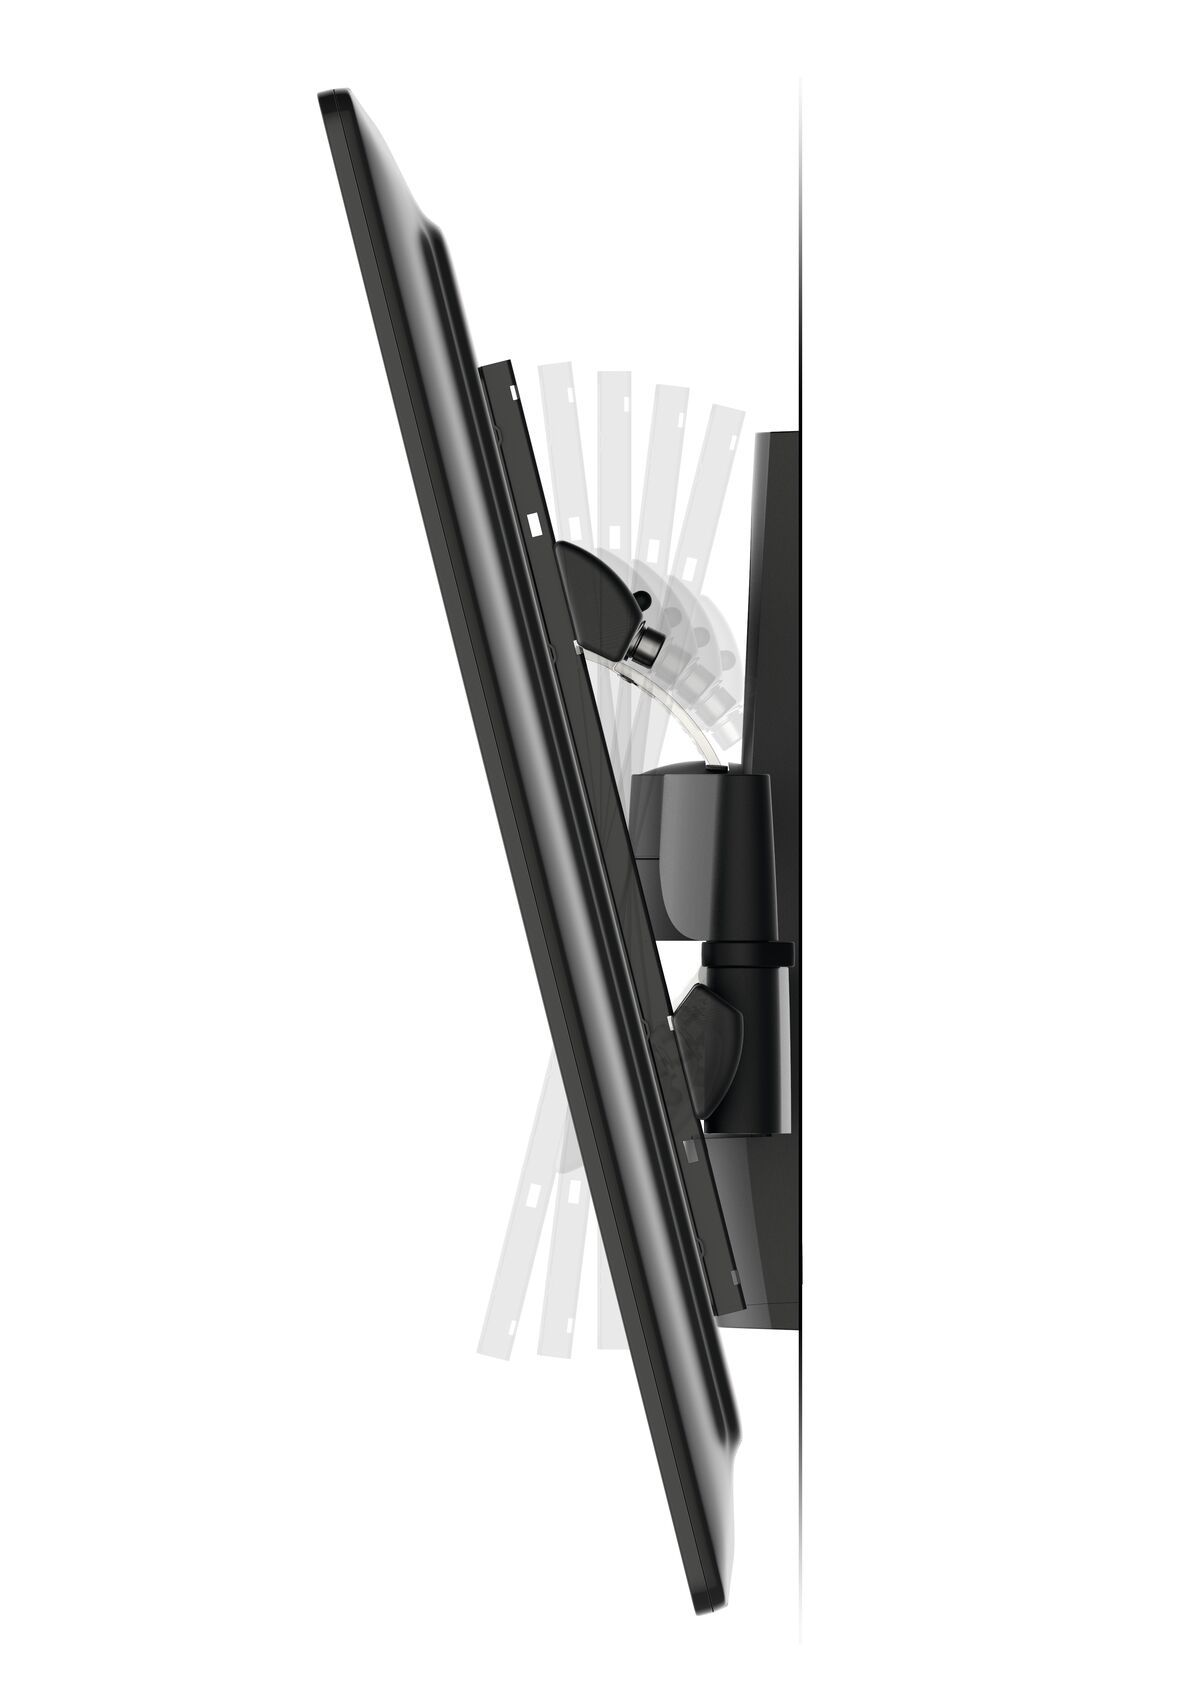 Vogel's WALL 2350 Full-Motion TV Wall Mount - Suitable for 40 up to 65 inch TVs - Motion (up to 120°) - Tilt up to 15° - Detail